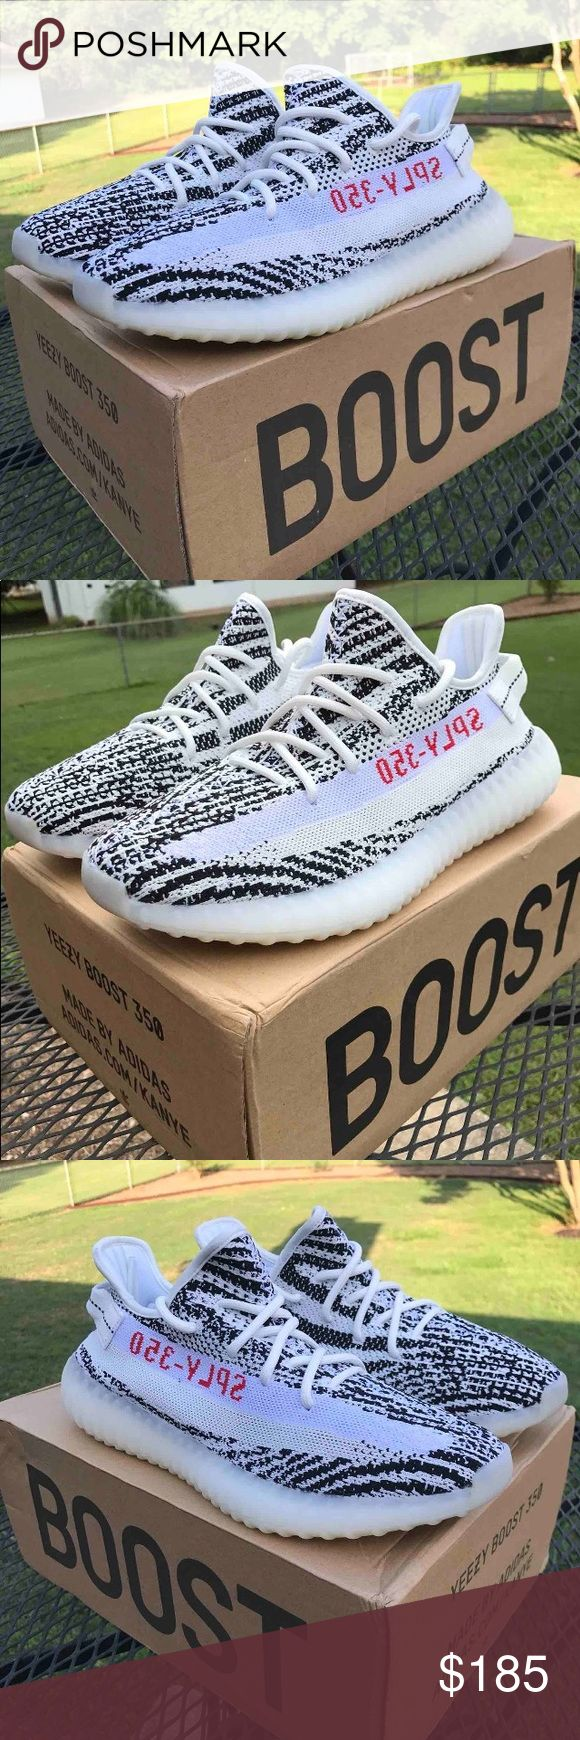 Adidas Yeezy Zebras 👀*Read the Description* These are 1:1 UA's. Literally stitch for stitch, and they're a fraction of the price. Comes with the original box. If you want yeezys but not yeezy money these are for you. In the Listing you get the zebras with the actual black light. Size 9.5/10. COMMENT IF YOU WANT ANOTHER SIZE. Yeezy Shoes Sneakers